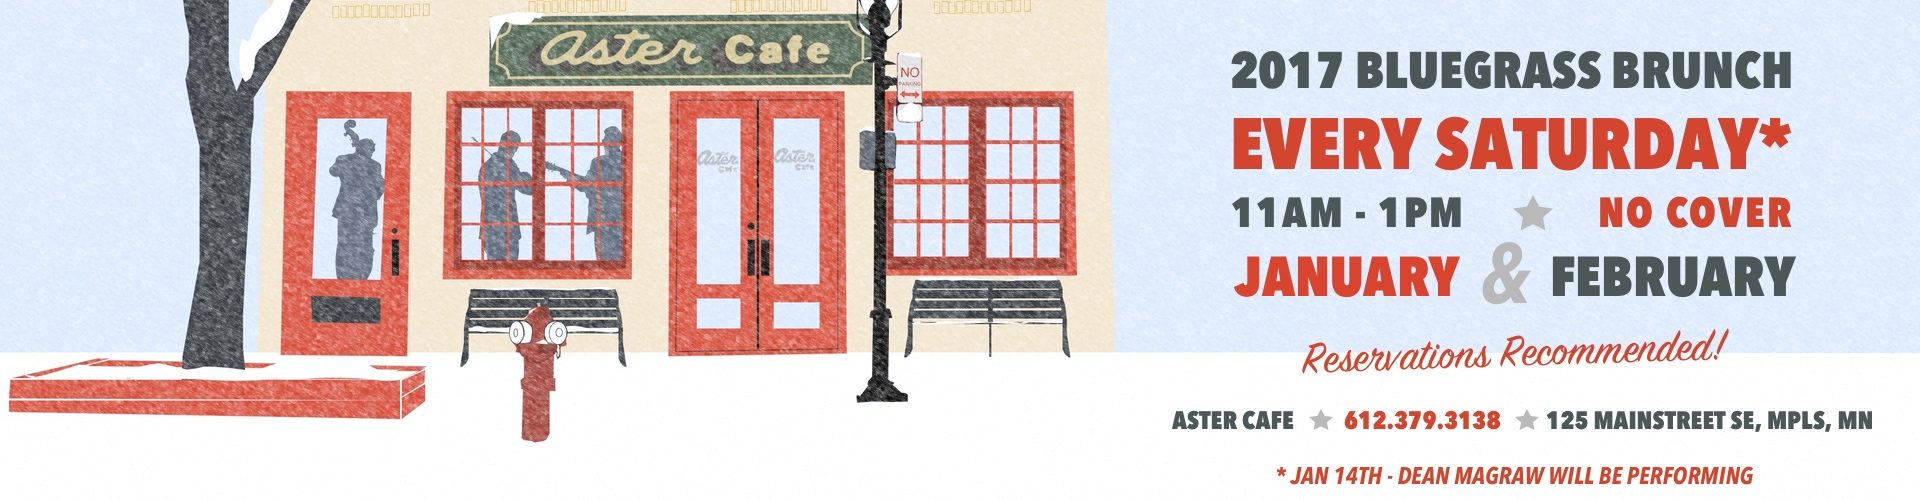 The High 48s Bluegrass Brunch 2017 @ The Aster Cafe